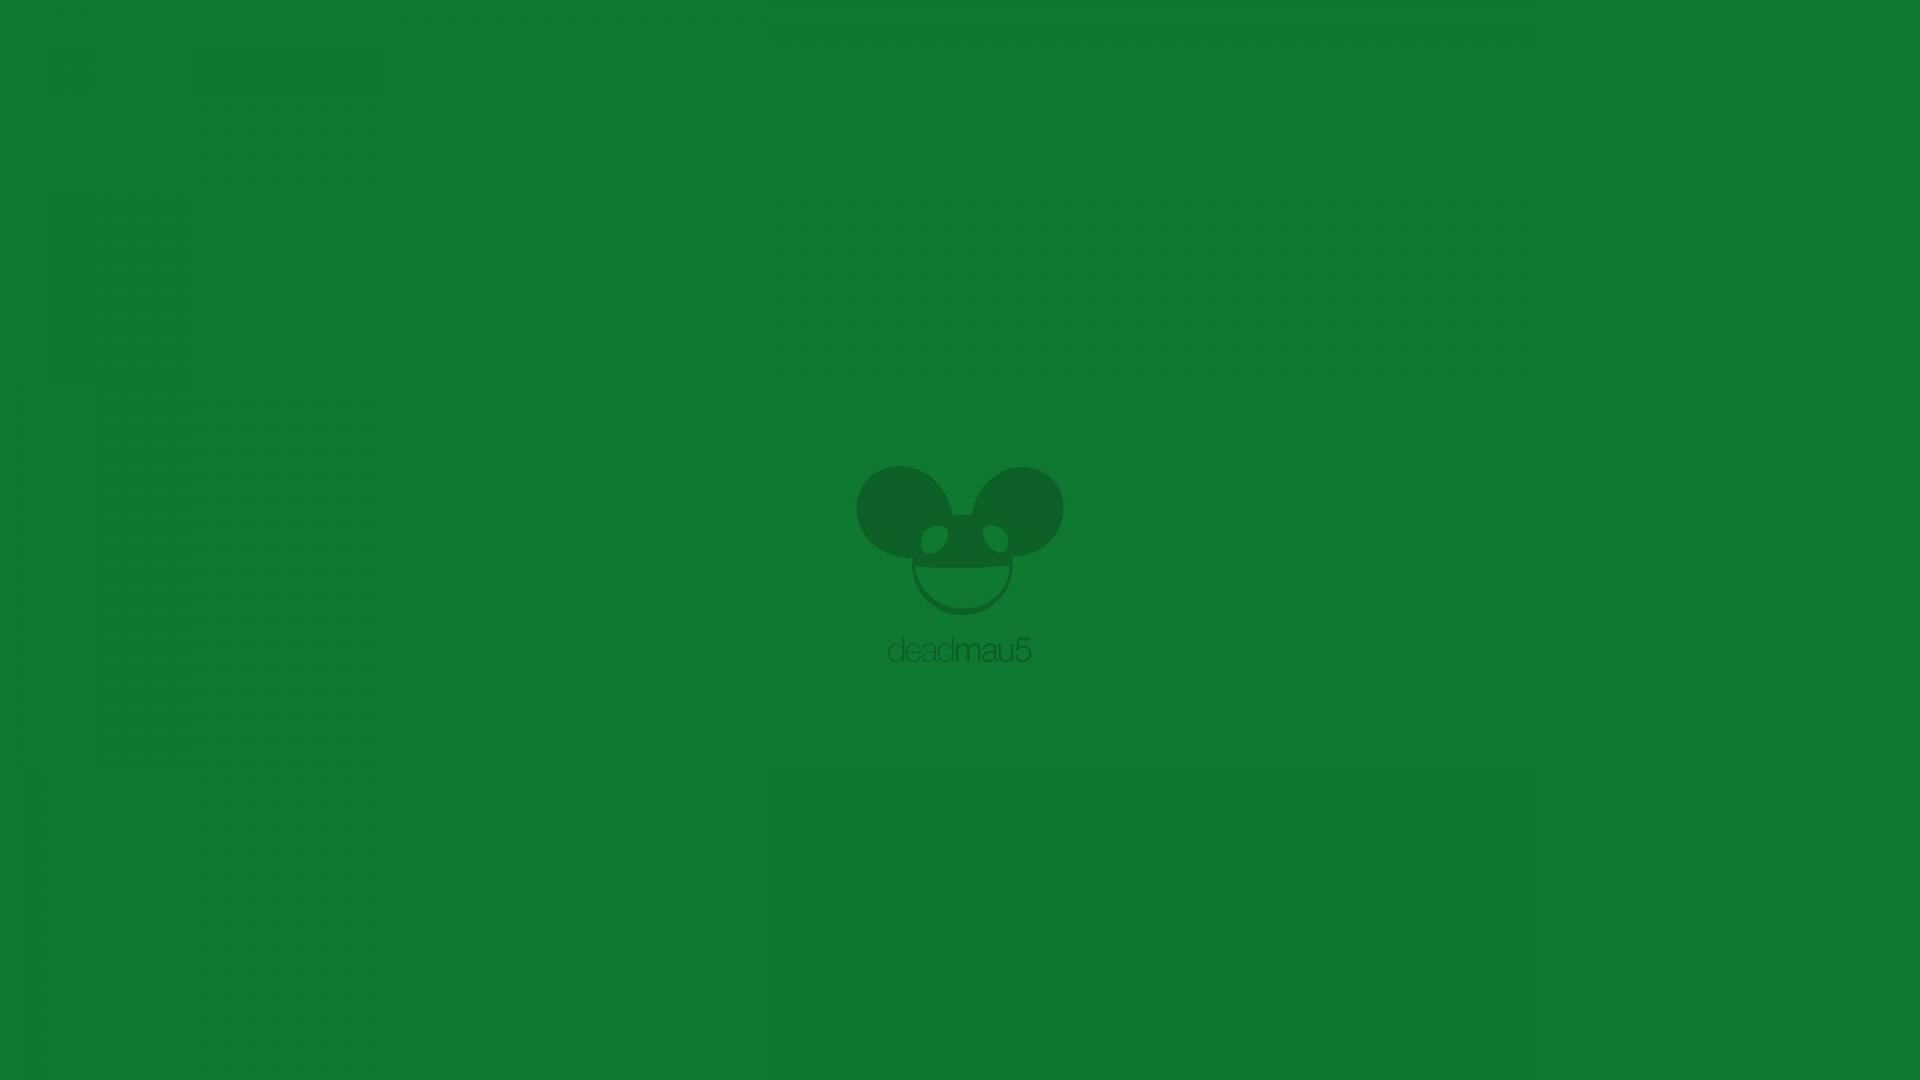 Simple Deadmau5 Wallpaper